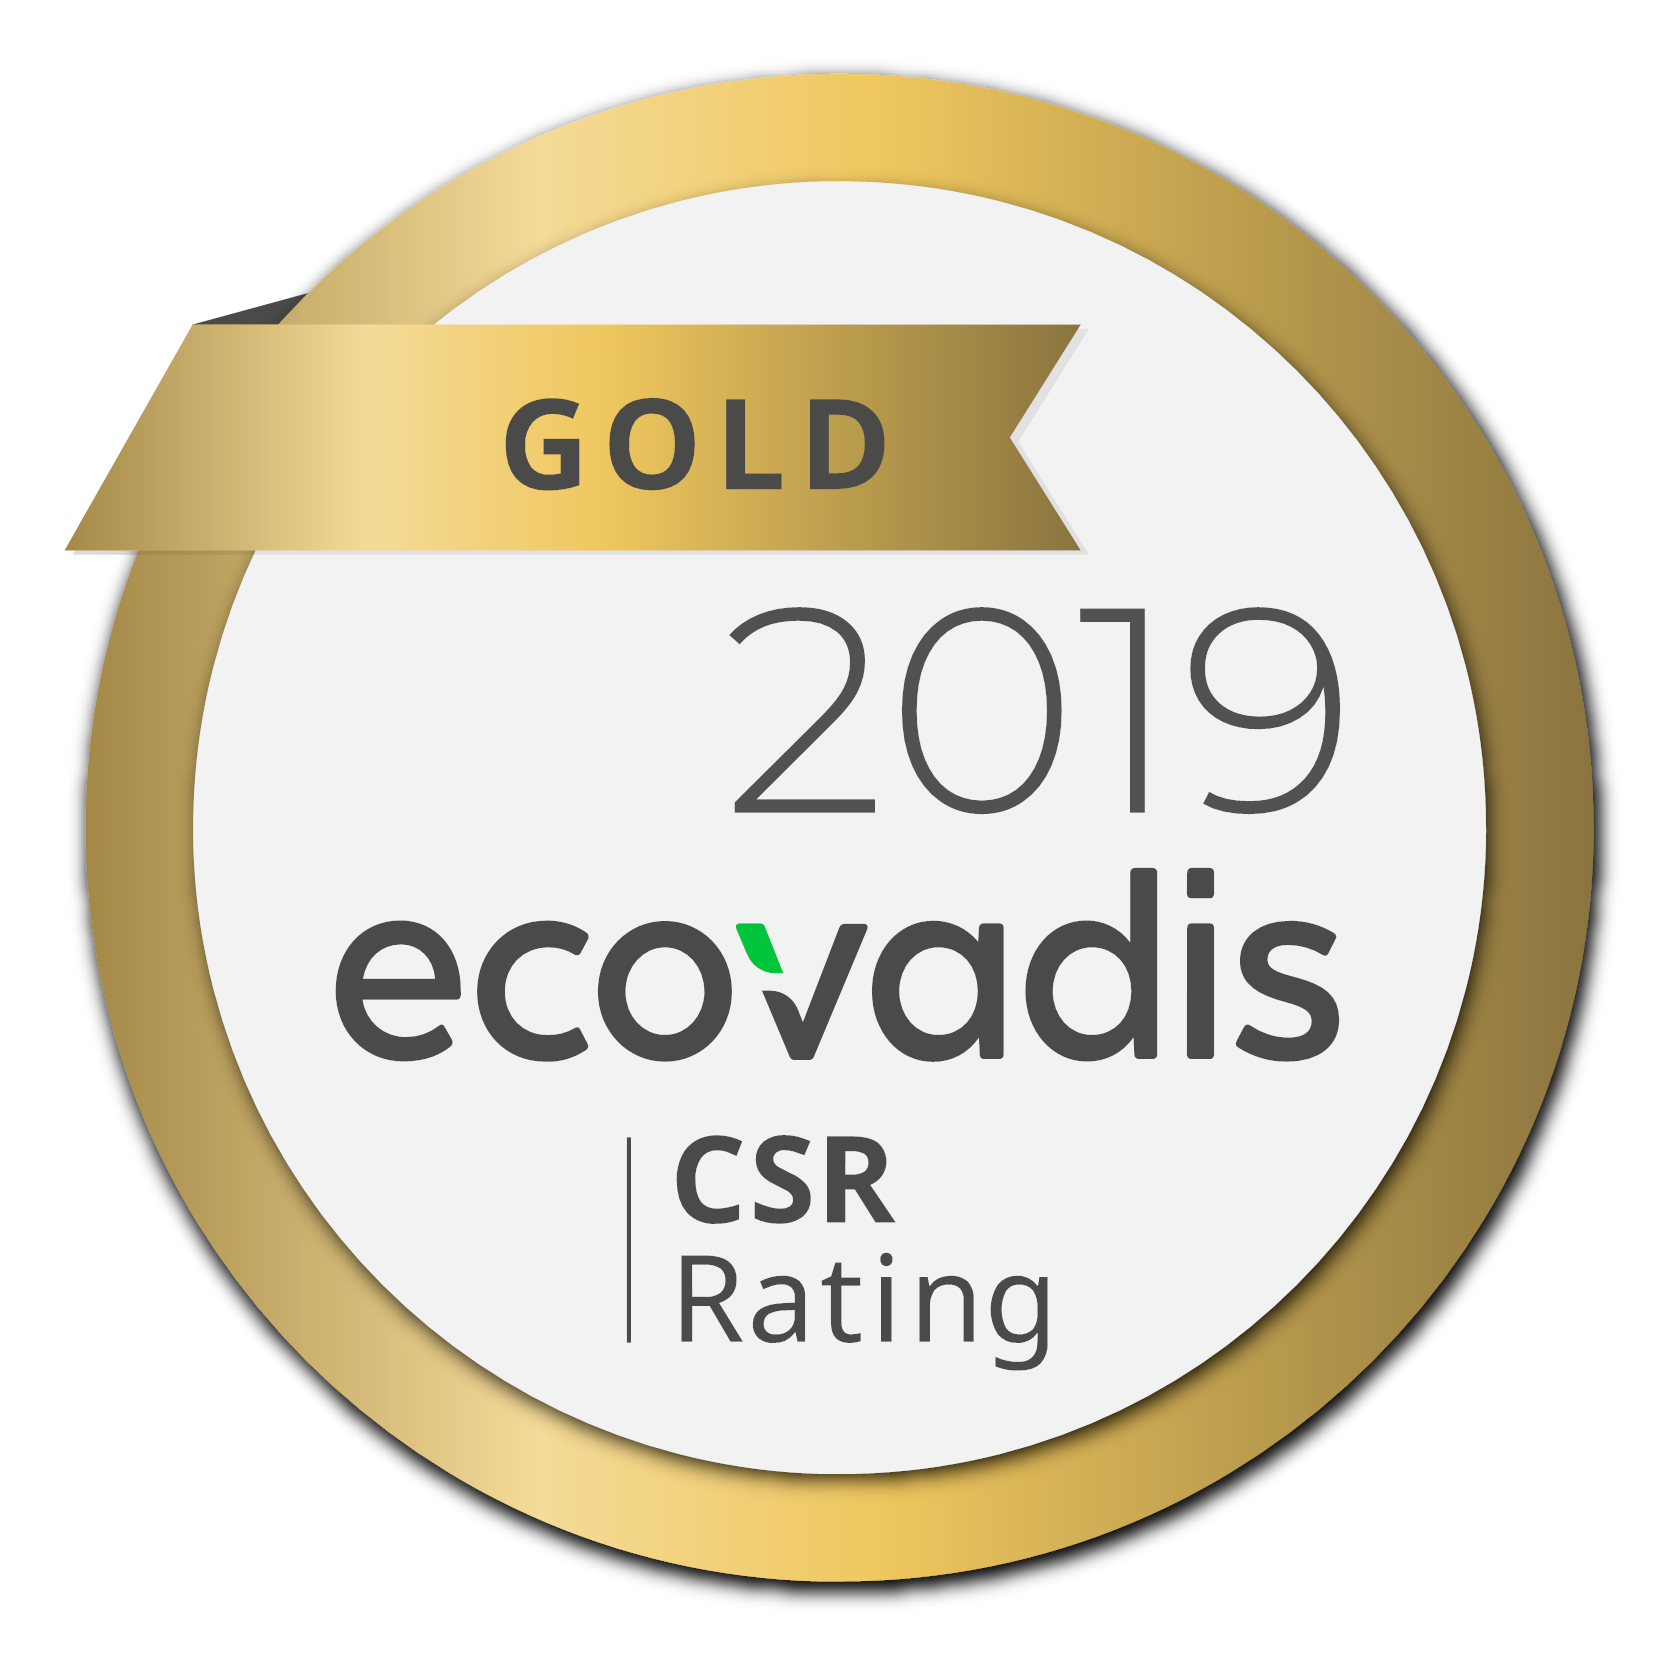 ALD AUTOMOTIVE CSR STRATEGY REWARDED BY MORE ECOVADIS GOLD RATINGS